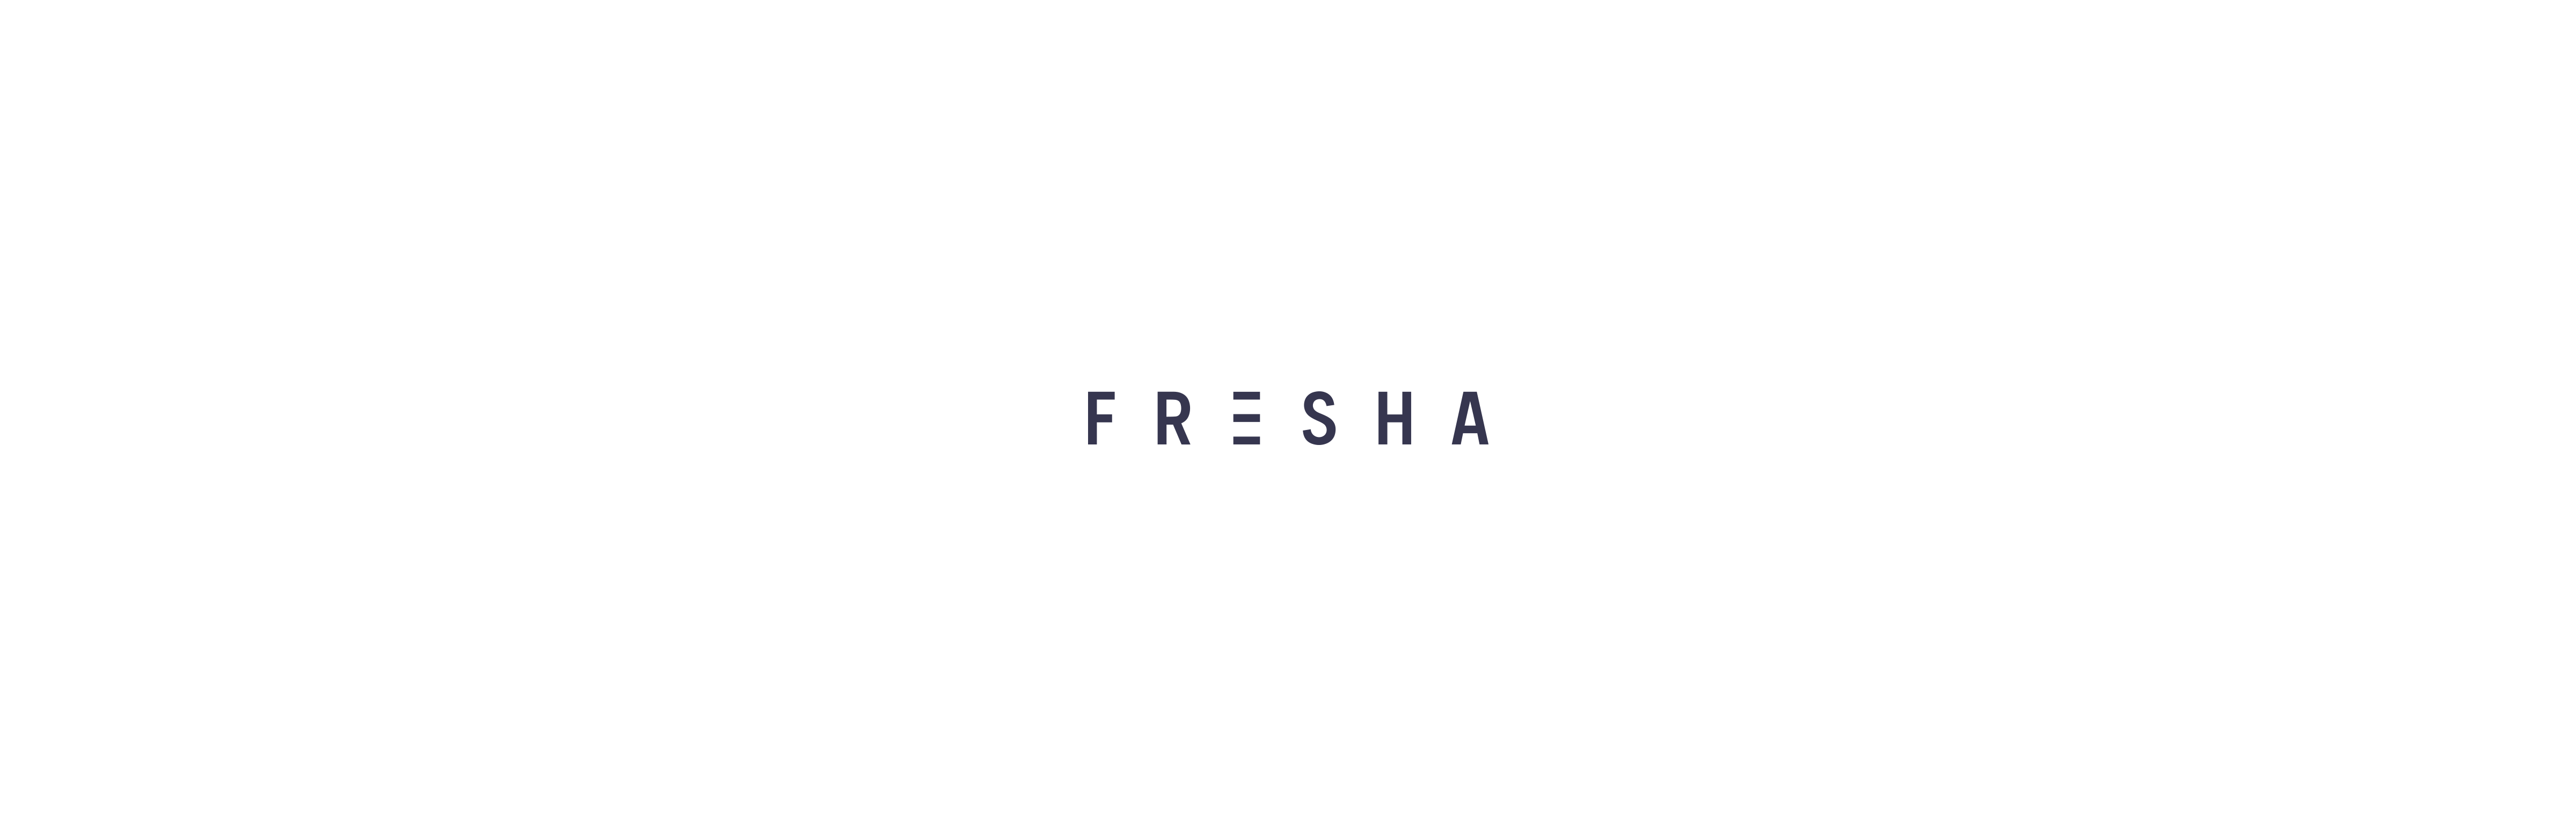 Fresha App Branding by The Woork Co